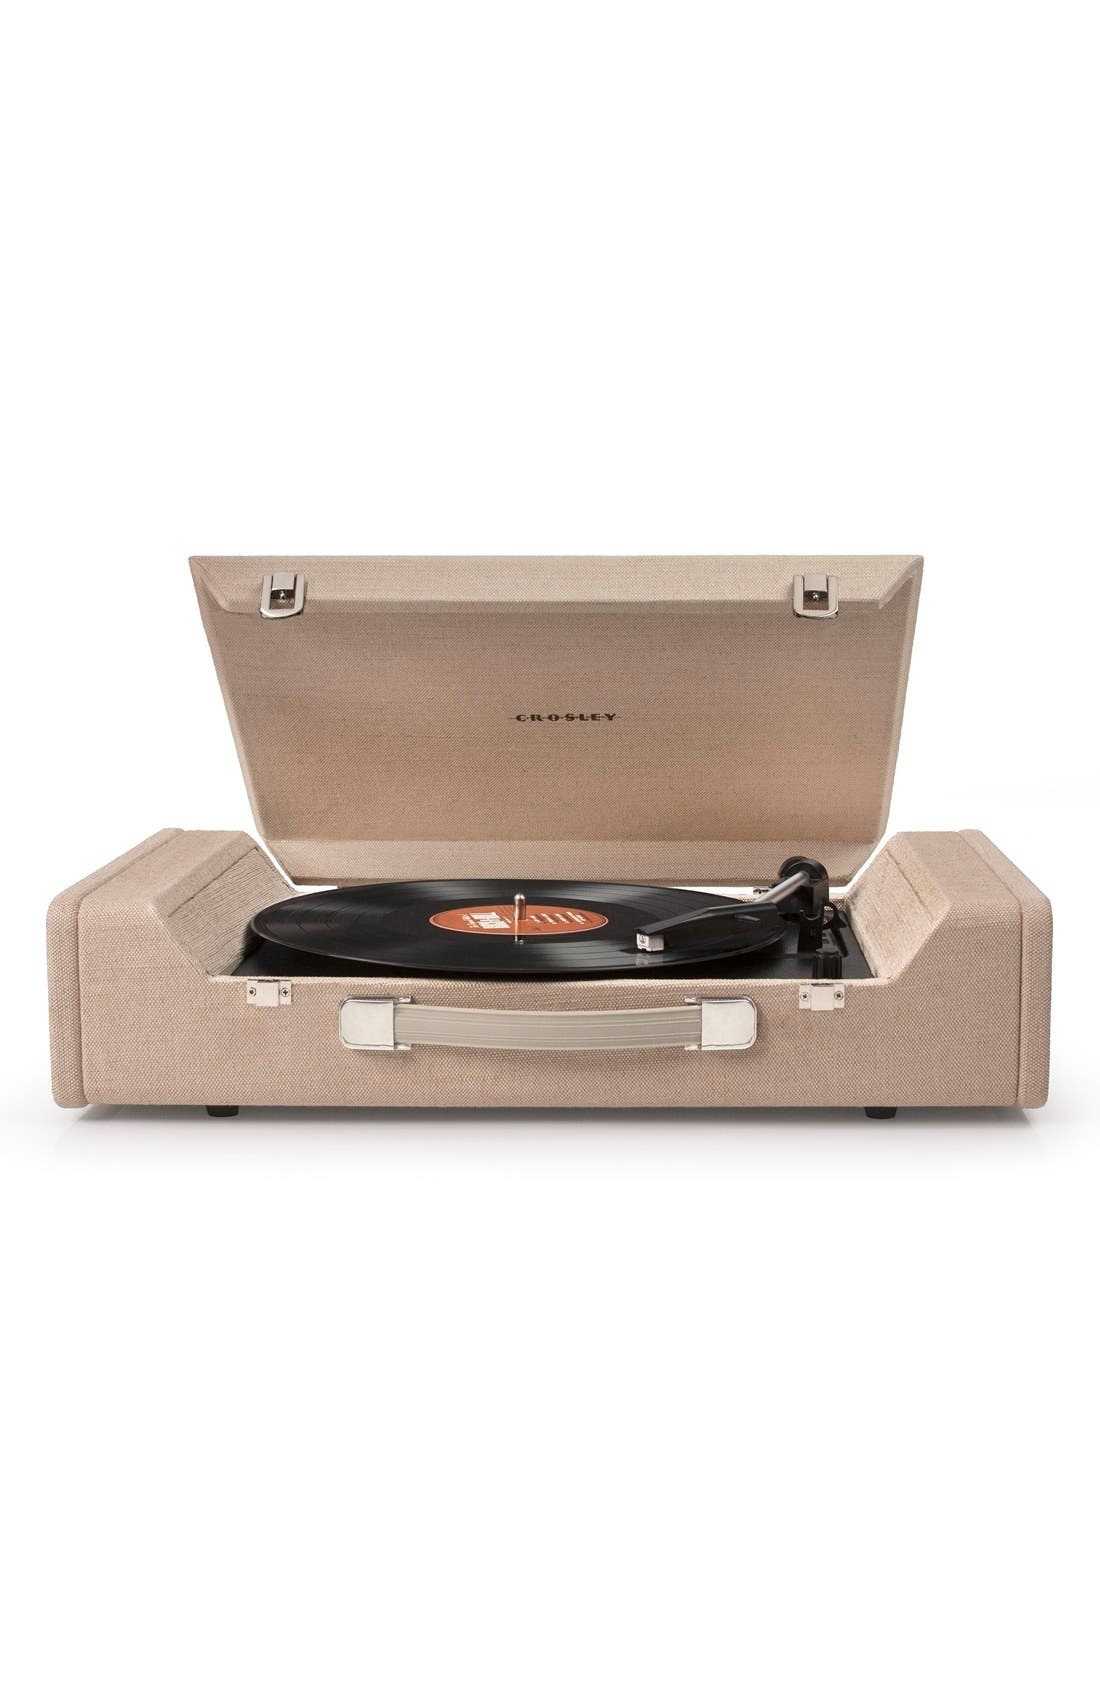 Crosley Radio 'Nomad' Turntable